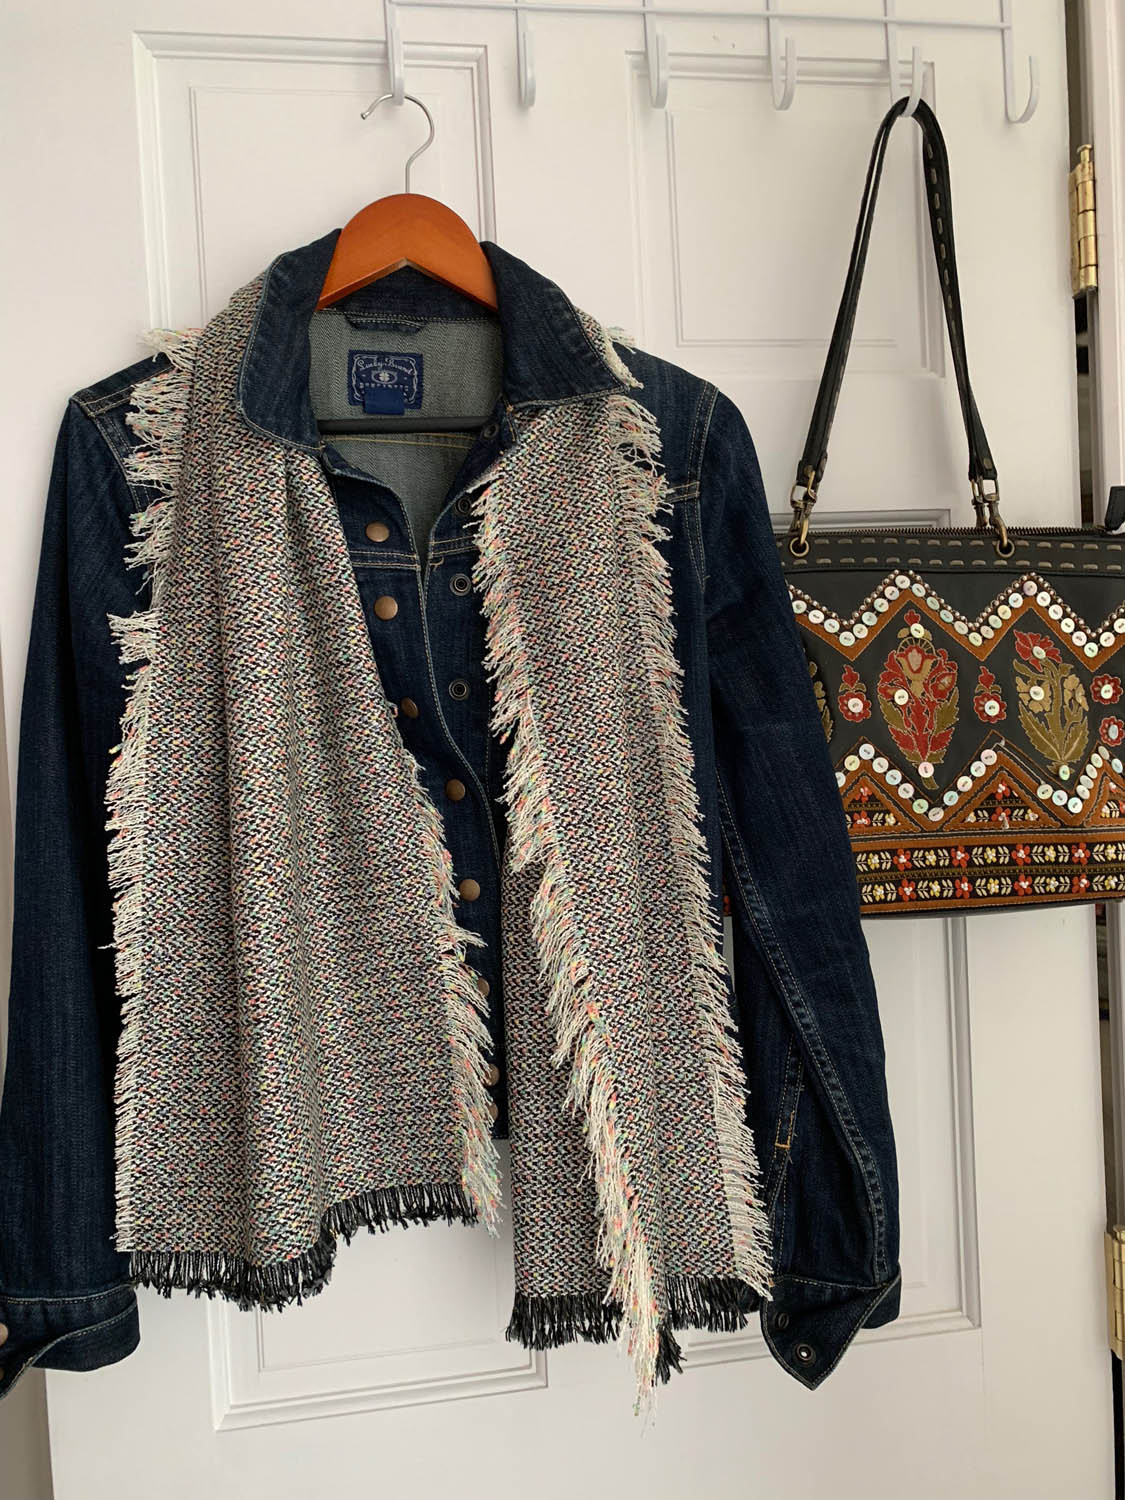 finished no-sew fringed fabric scarf draped over denim jacket on a hanger